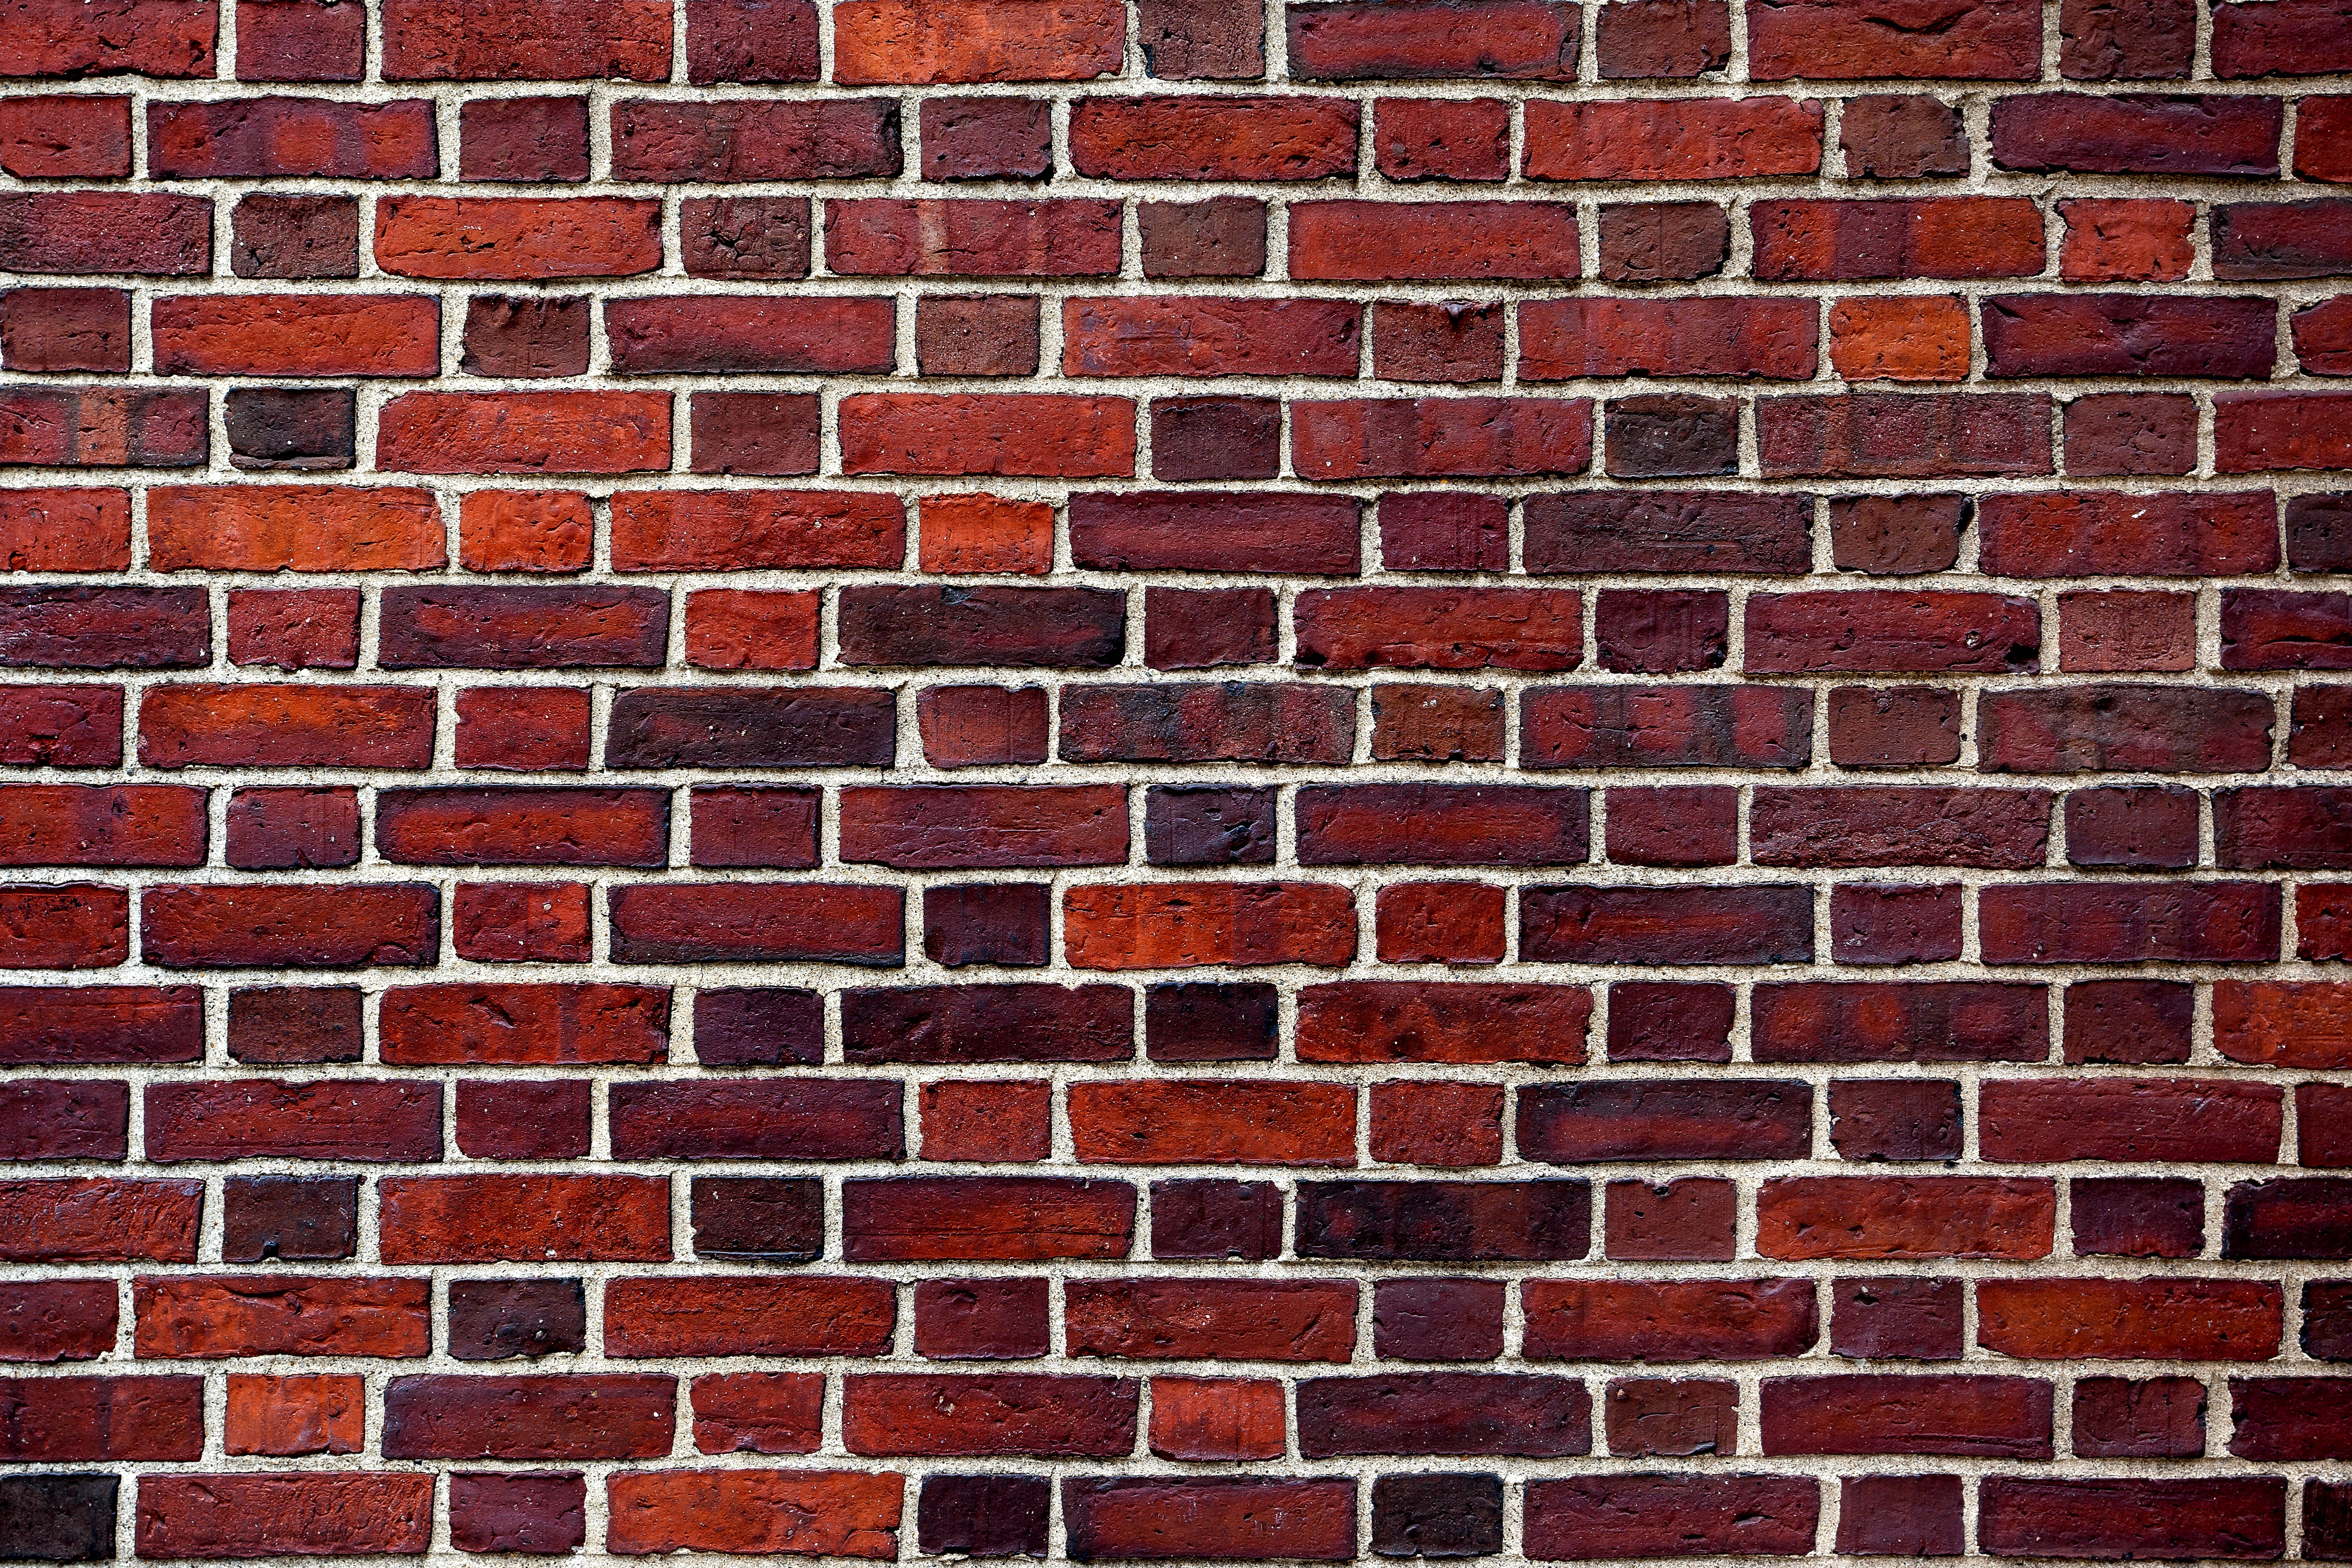 The old red brick wall - Custom Wallpaper